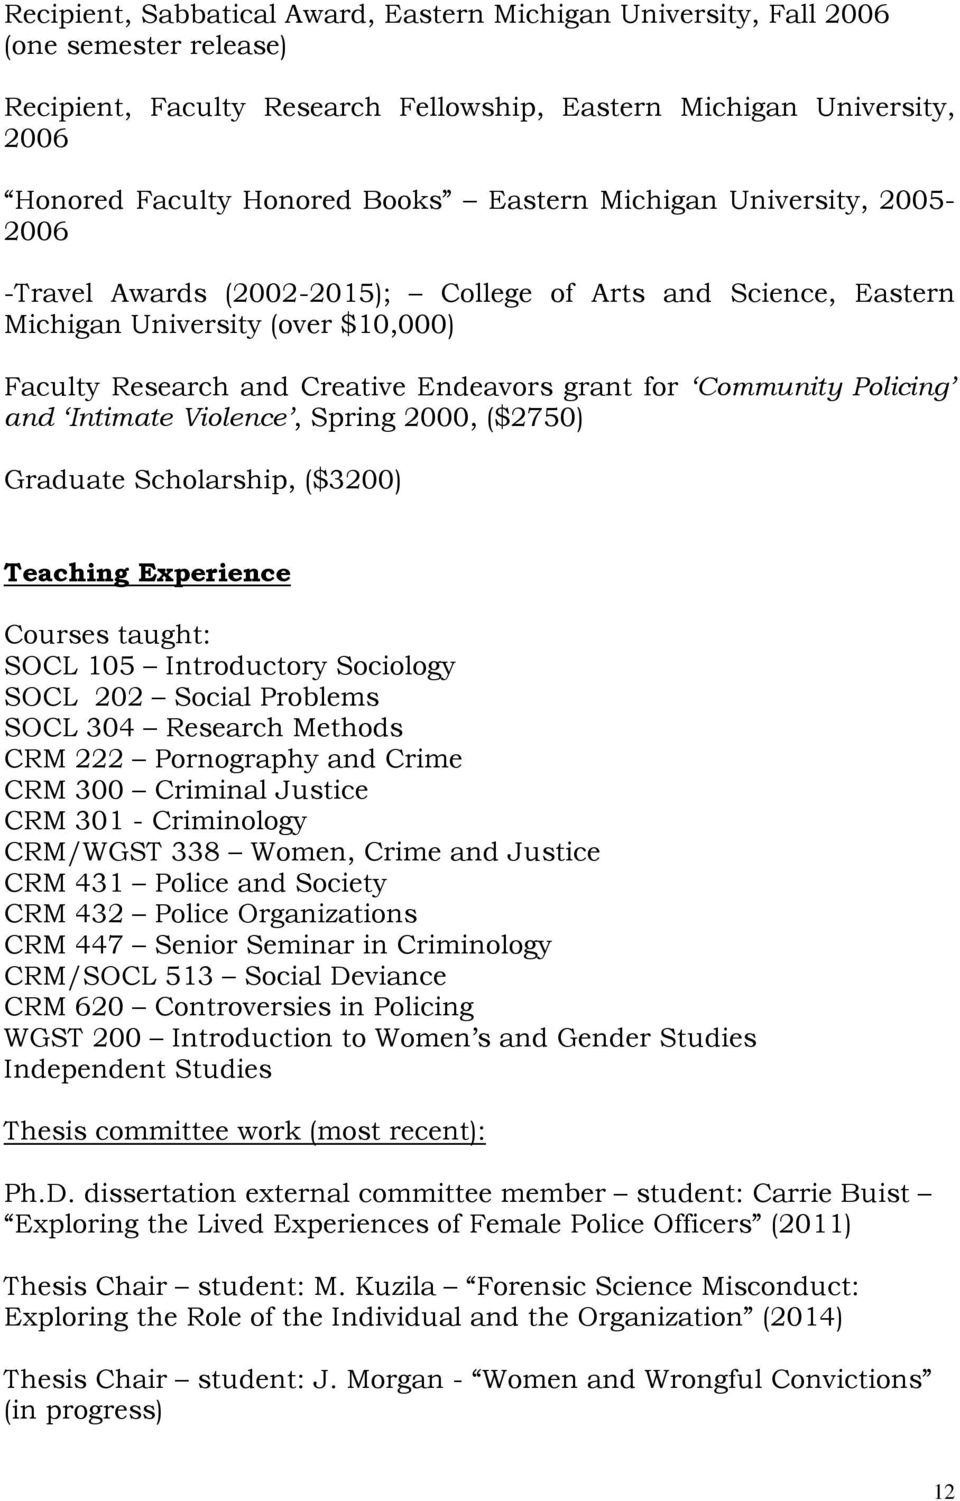 Teaching Experience Courses taught: SOCL 105 Introductory Sociology SOCL 202 Social Problems SOCL 304 Research Methods CRM 222 Pornography and Crime CRM 300 Criminal Justice CRM 301 - Criminology